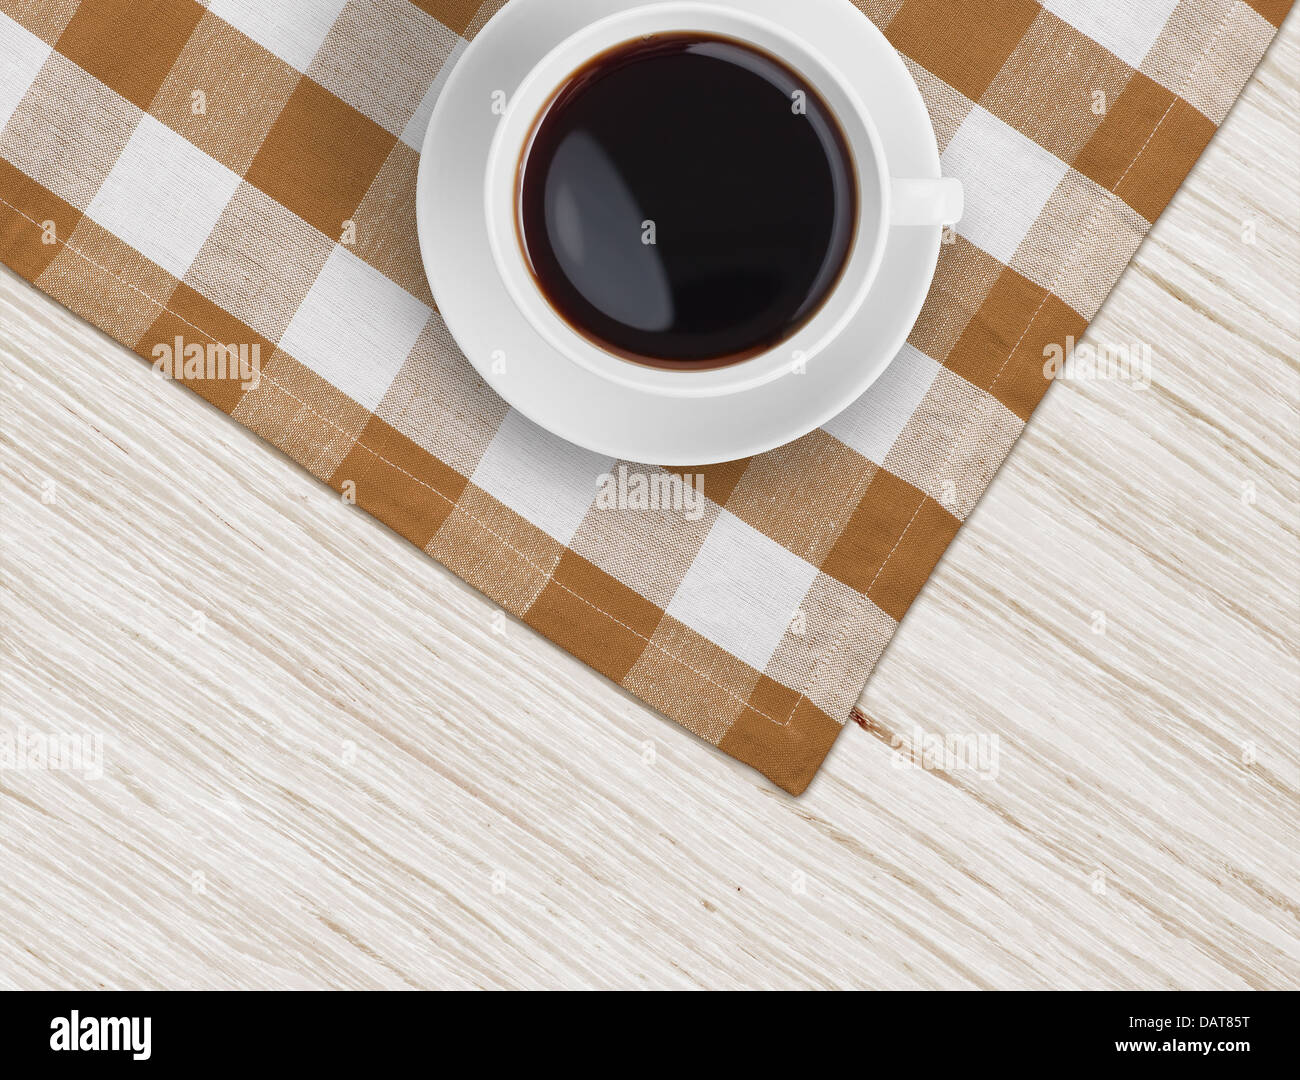 coffee cup top view on tablecloth over wooden table - Stock Image